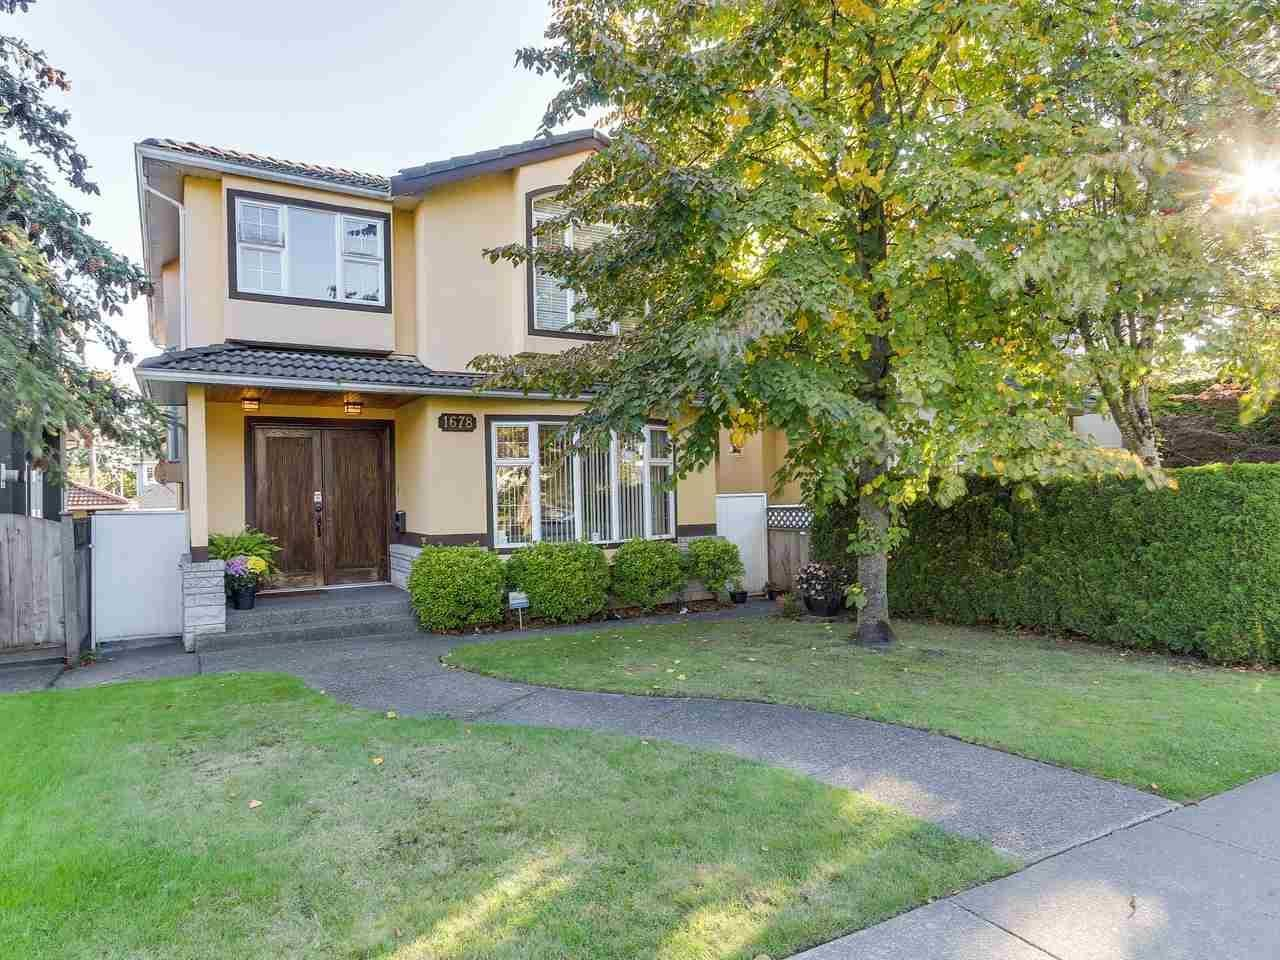 R2110705 - 1678 W 64TH AVENUE, S.W. Marine, Vancouver, BC - House/Single Family